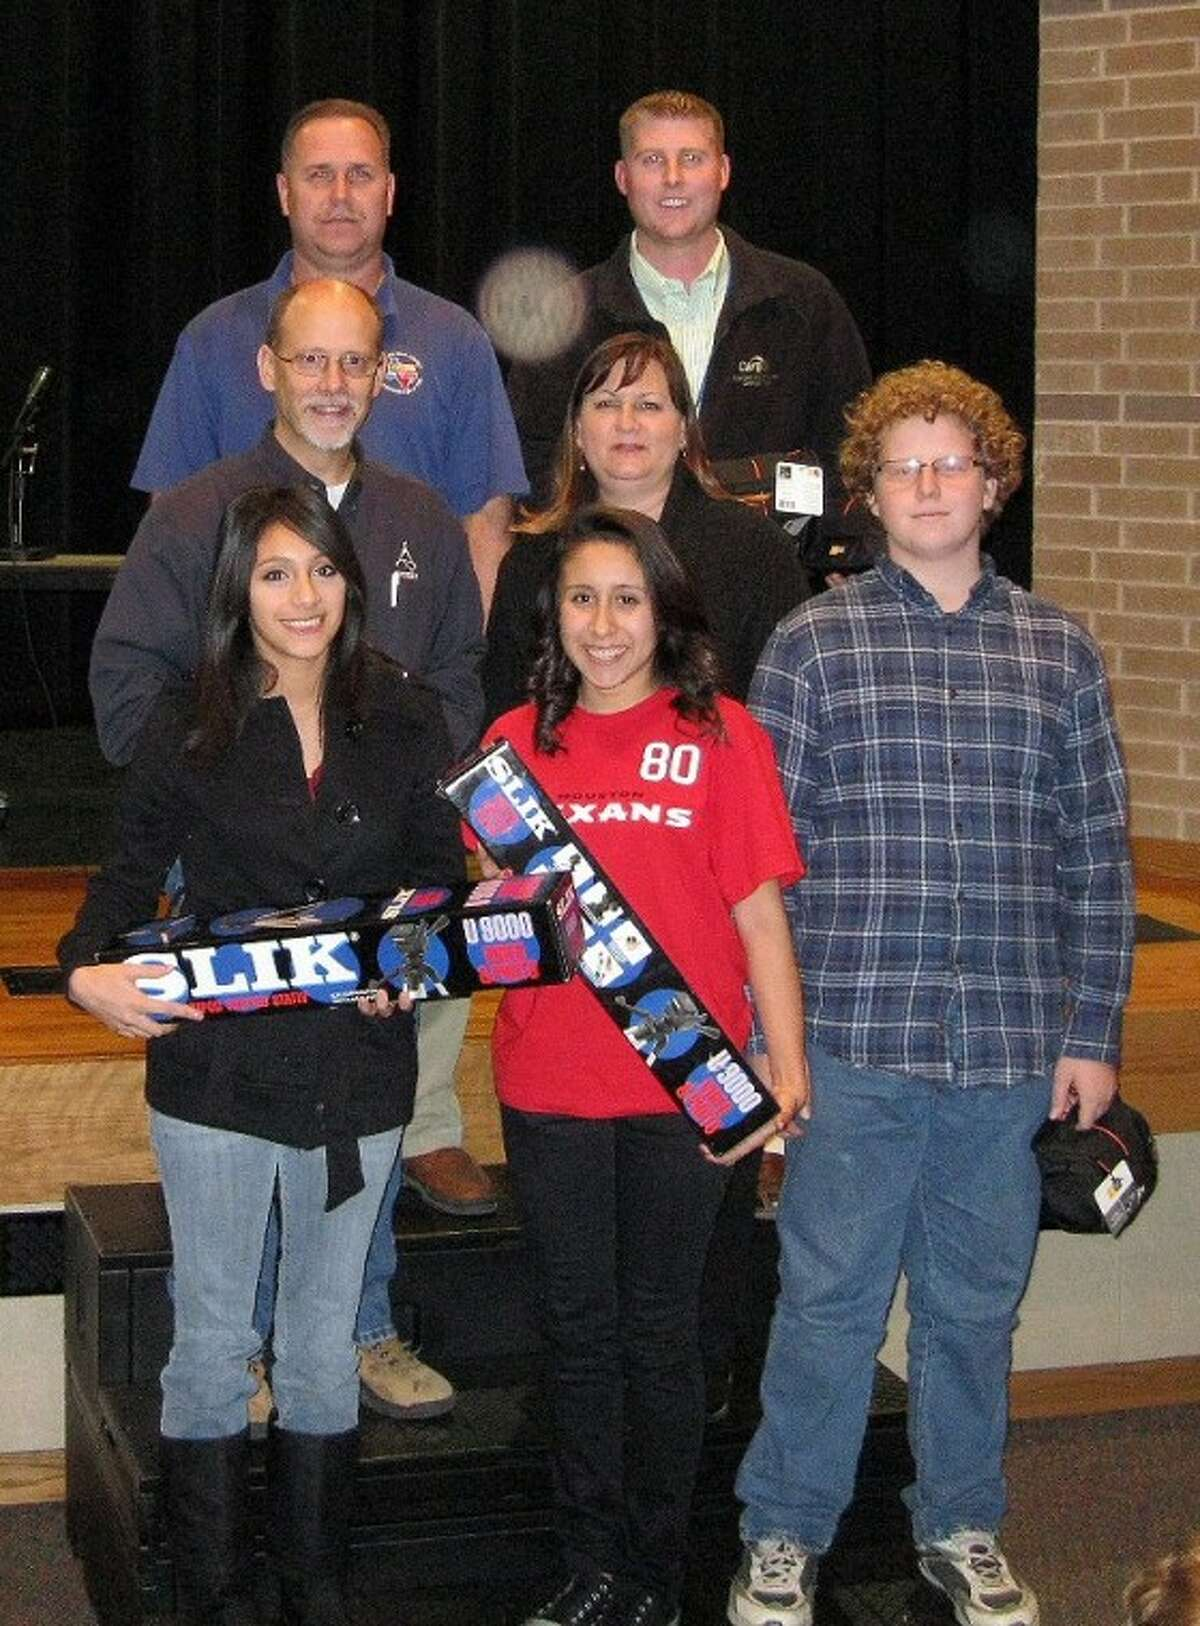 Pictured front row left to right, Perla Agular, Melissa Espita and Cameron Gaylord hold tripods and cases donated by Yokom Properties. Middle row Vince and Robin Yokom. Back row, Gerald Powell, WCFA president and Royal High School video instructor Chase Jacobs.